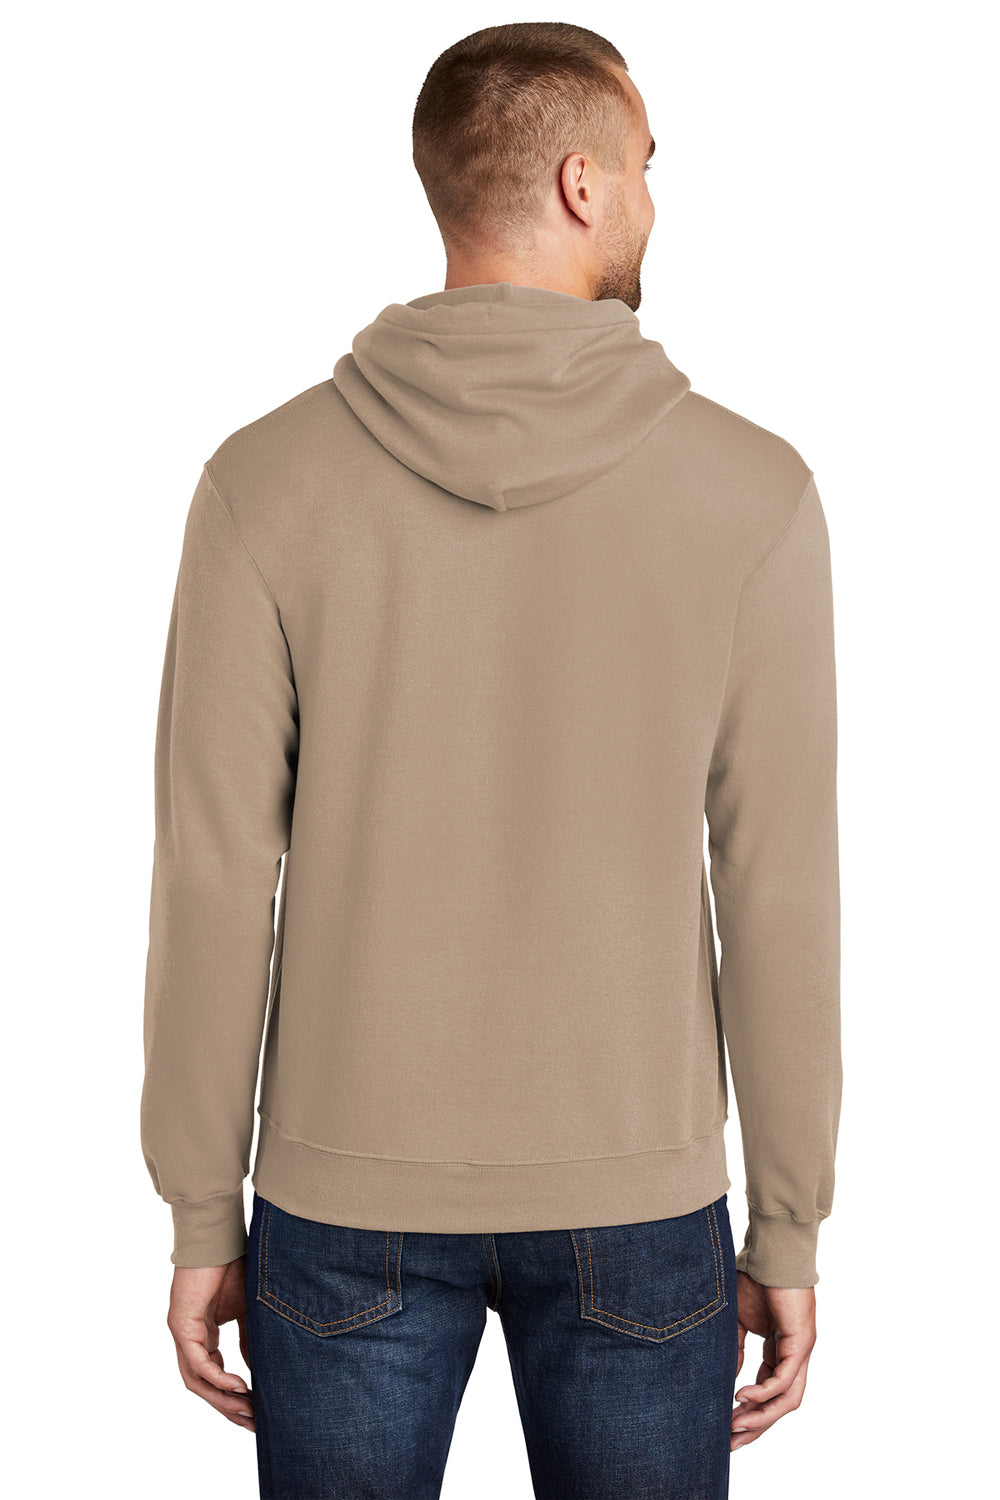 Port & Company PC78H Mens Core Fleece Hooded Sweatshirt Hoodie Sand Brown Back